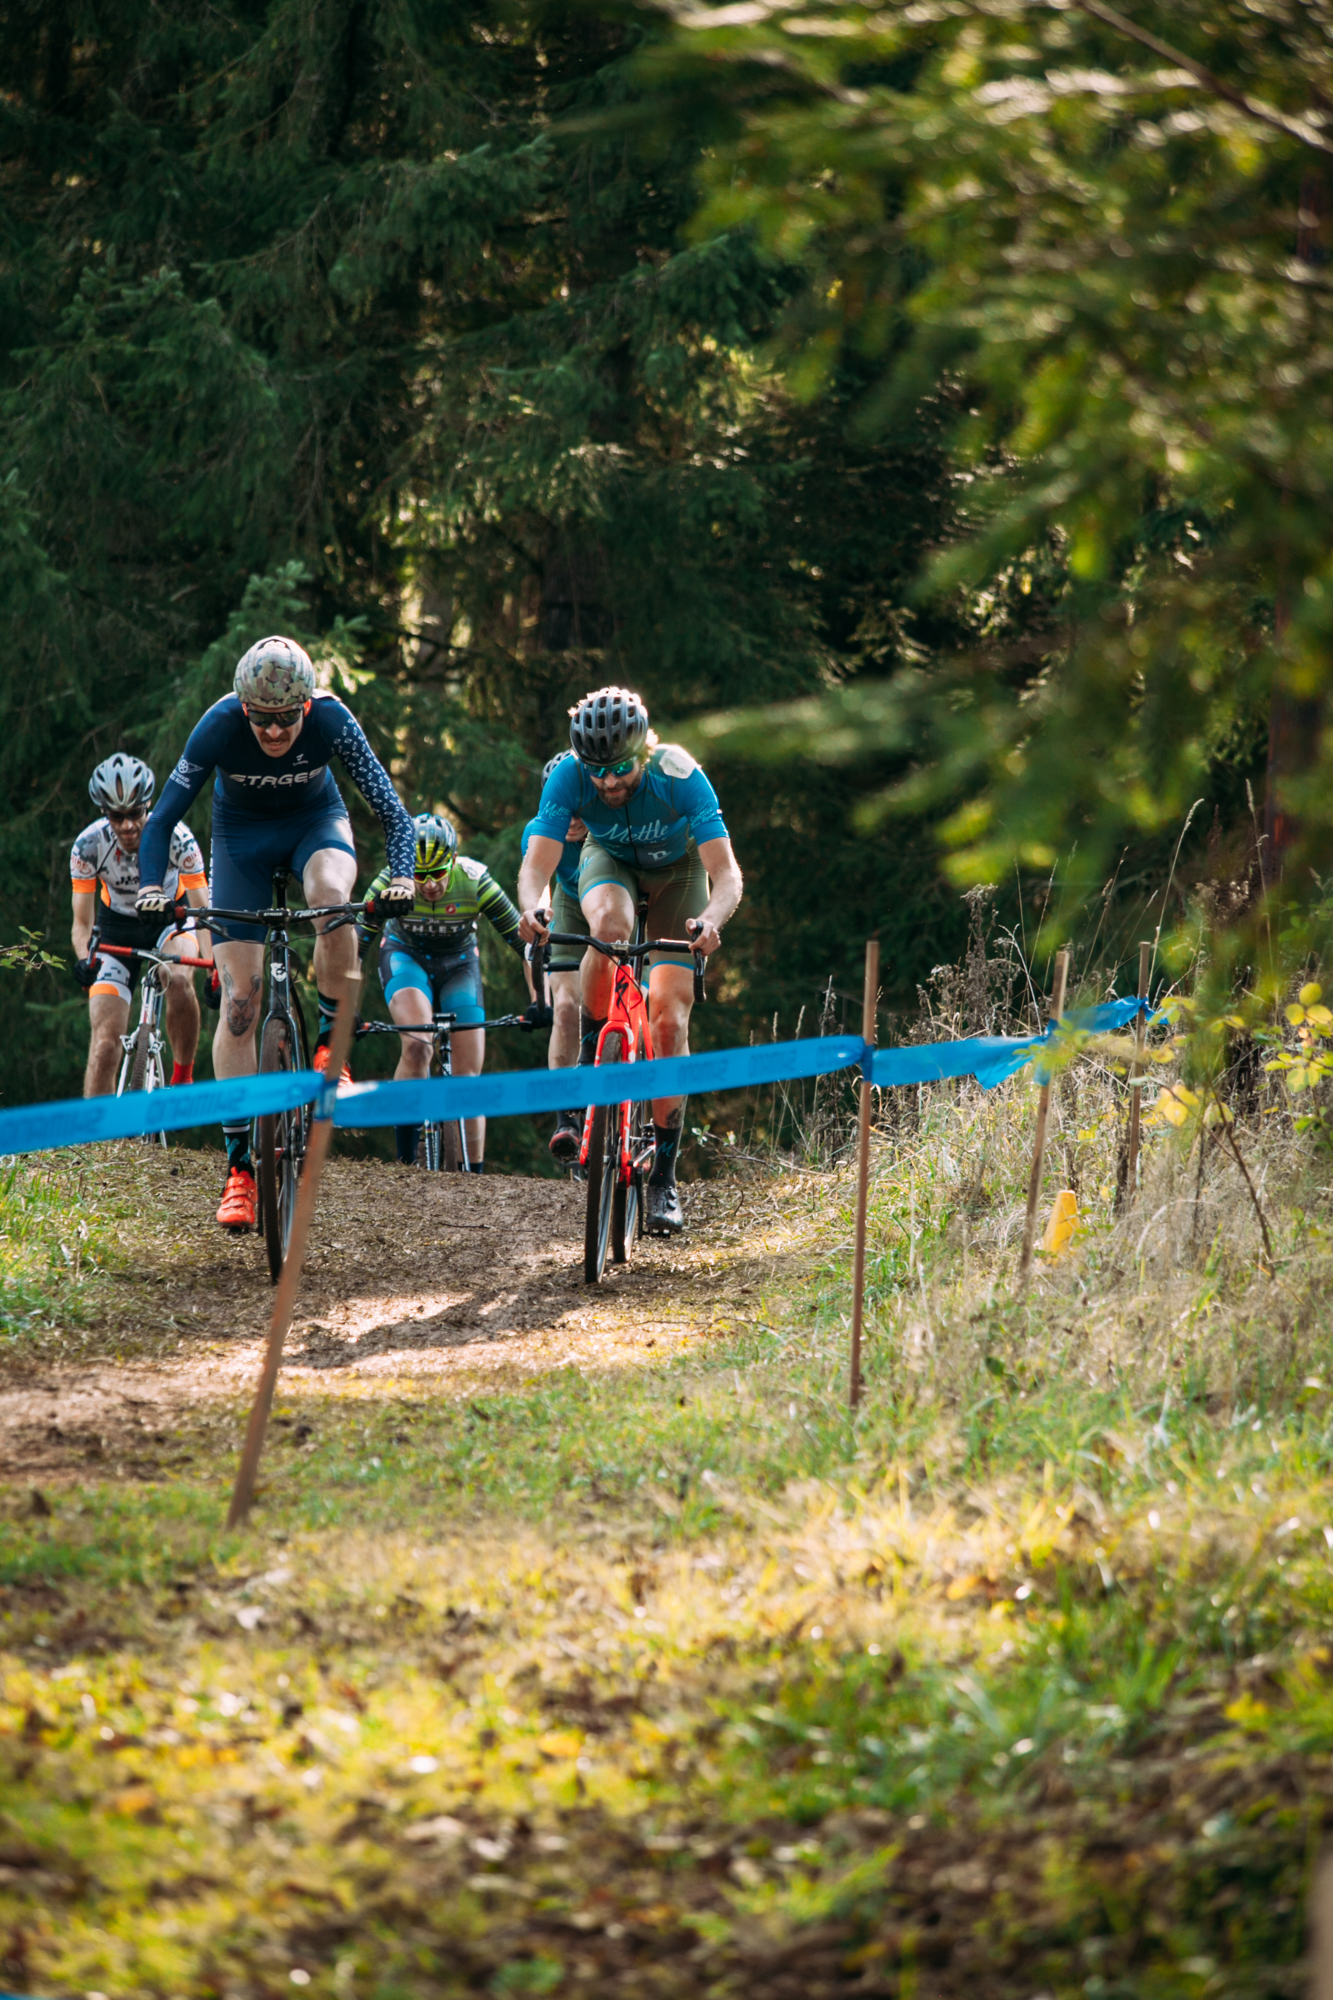 Cyclocross18_CCCX_RainierHS-144-mettlecycling.jpg